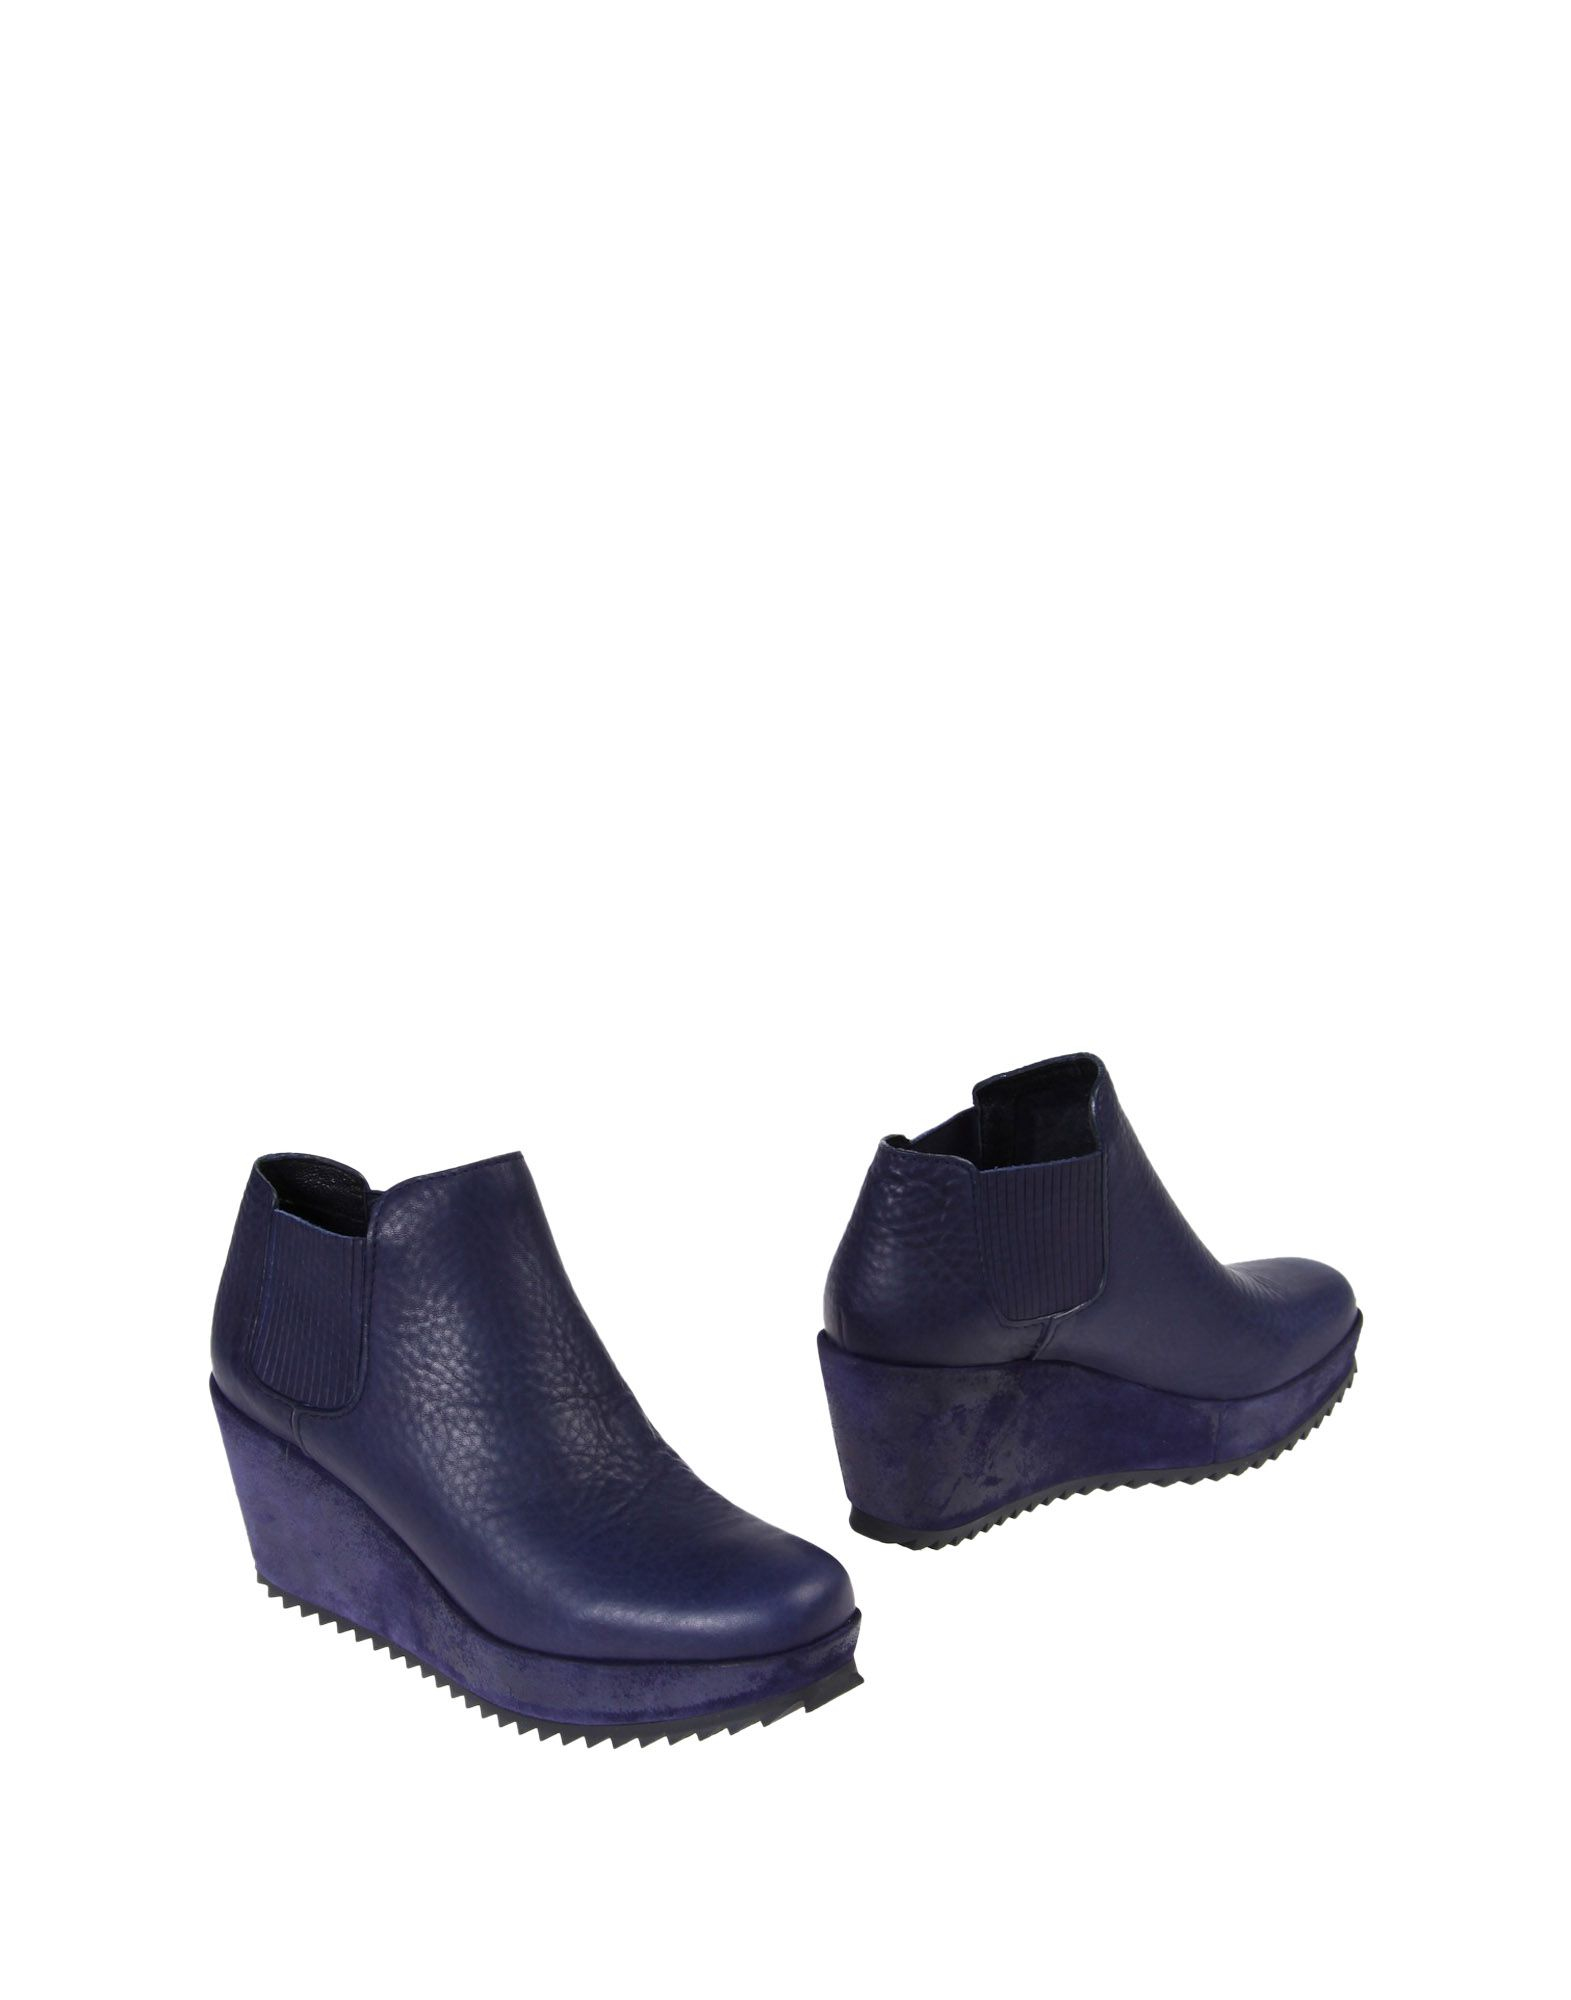 pedro garcia ankle boots in black purple lyst